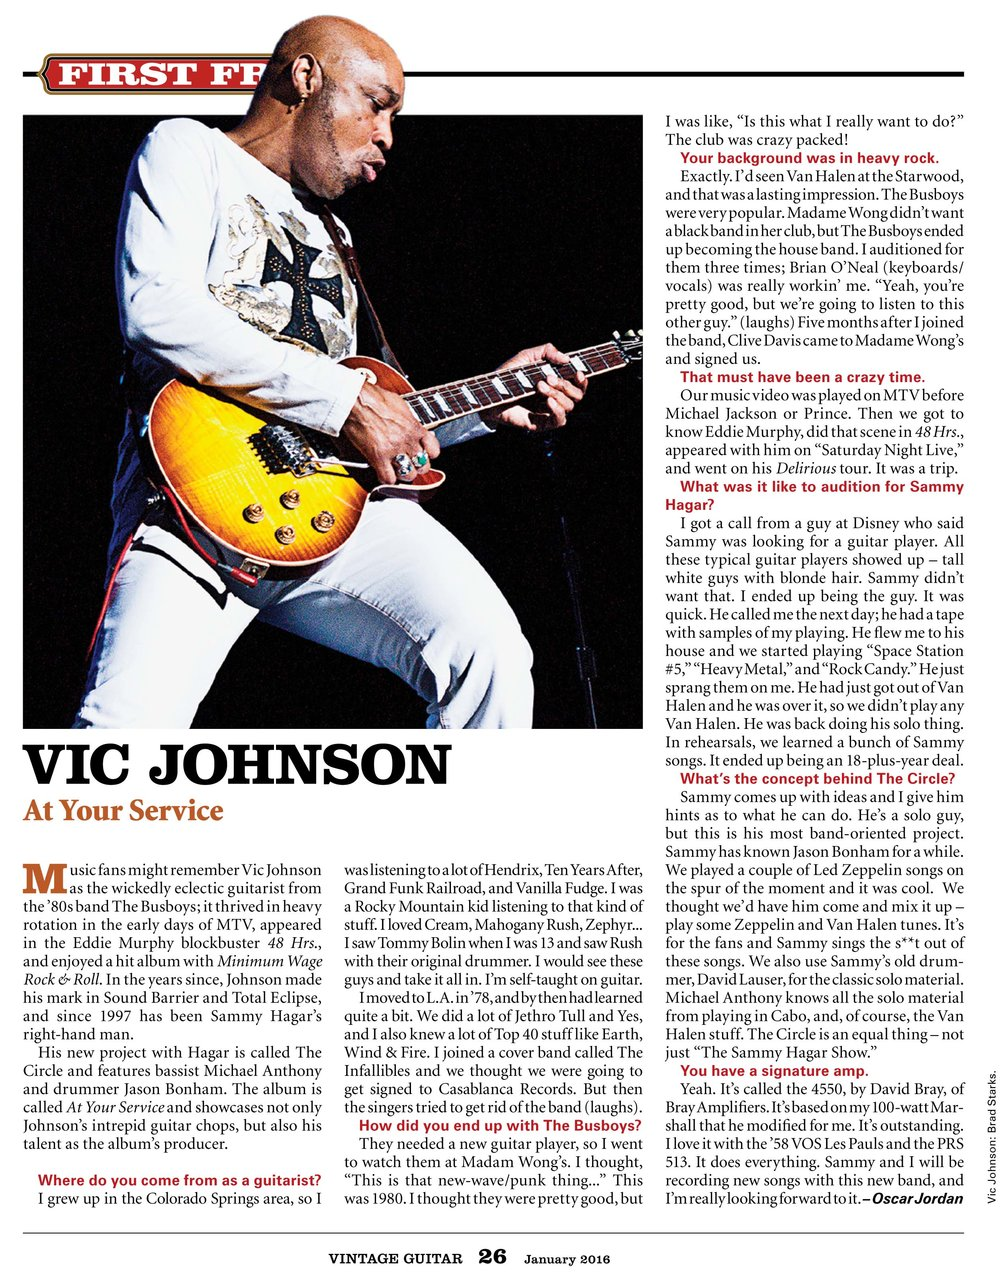 Vic JohnsonFIRSTFRETTEARSHEETJAN2016.jpg